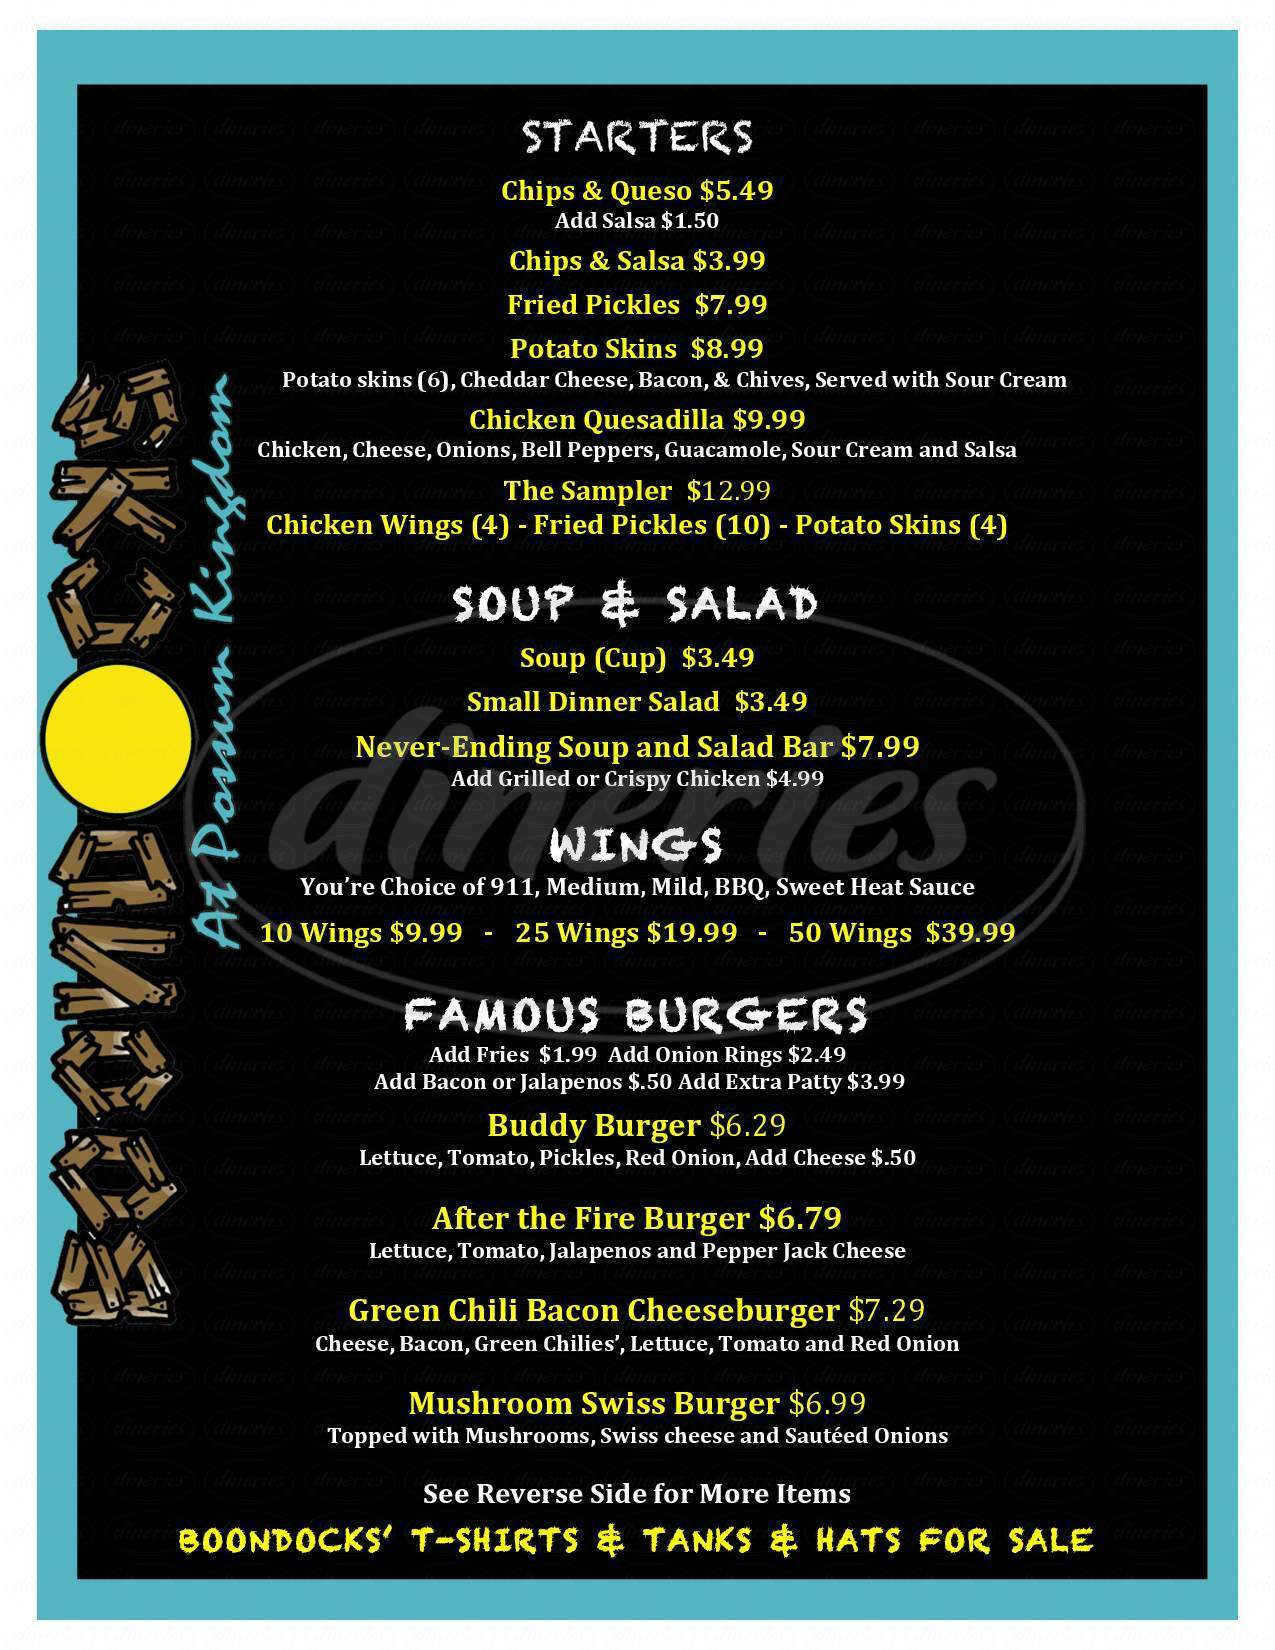 menu for BoondocksPK Bar & Grill